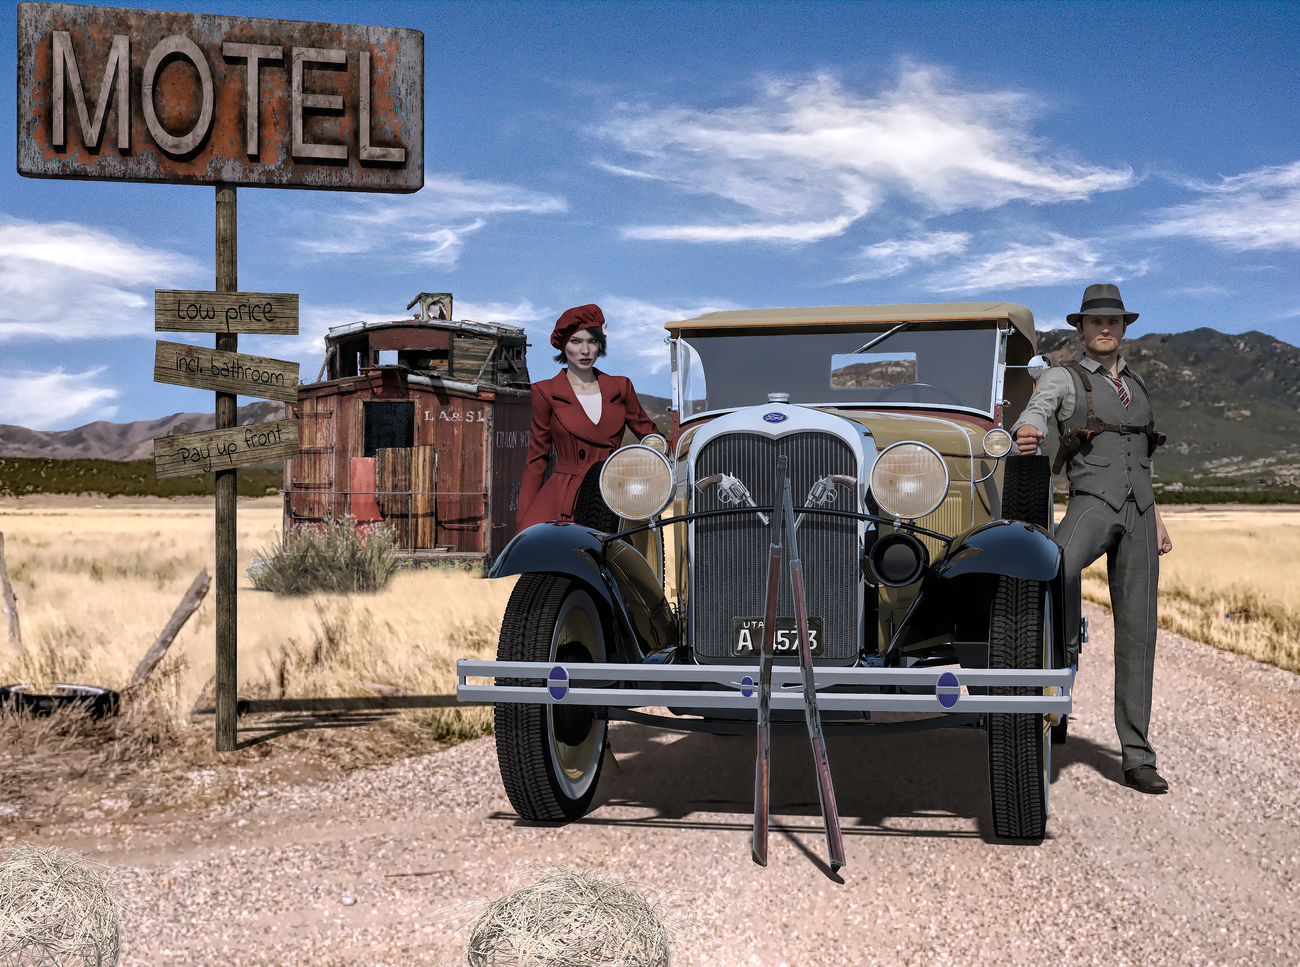 The new adventures of Bonnie and Clyde by gaius